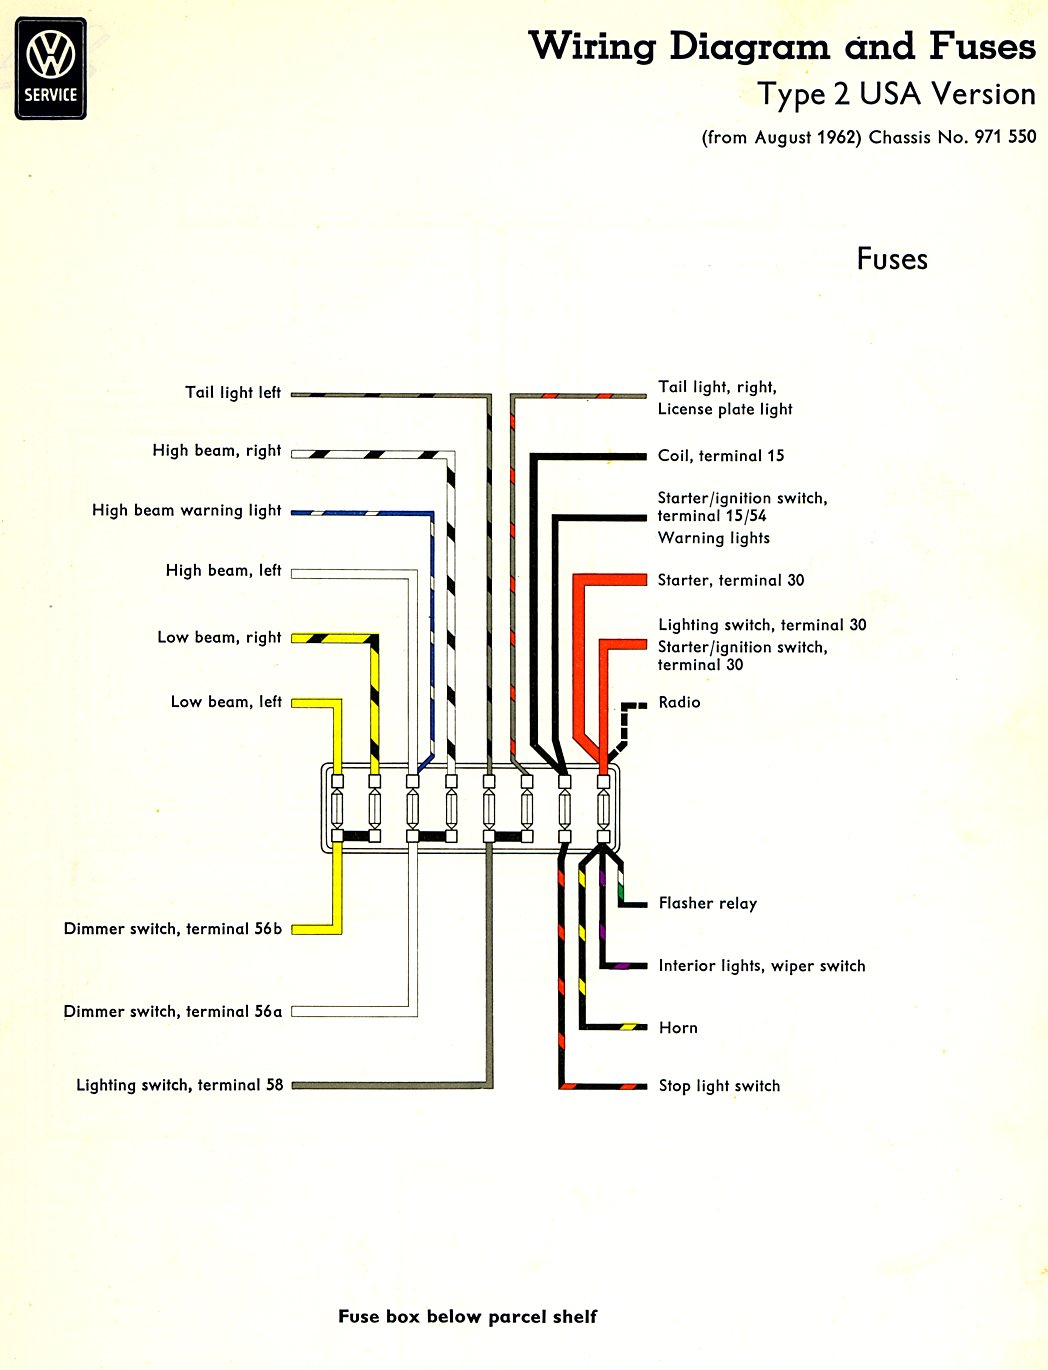 Type 2 Wiring Diagrams Light Converter Harness Diagram Schematics